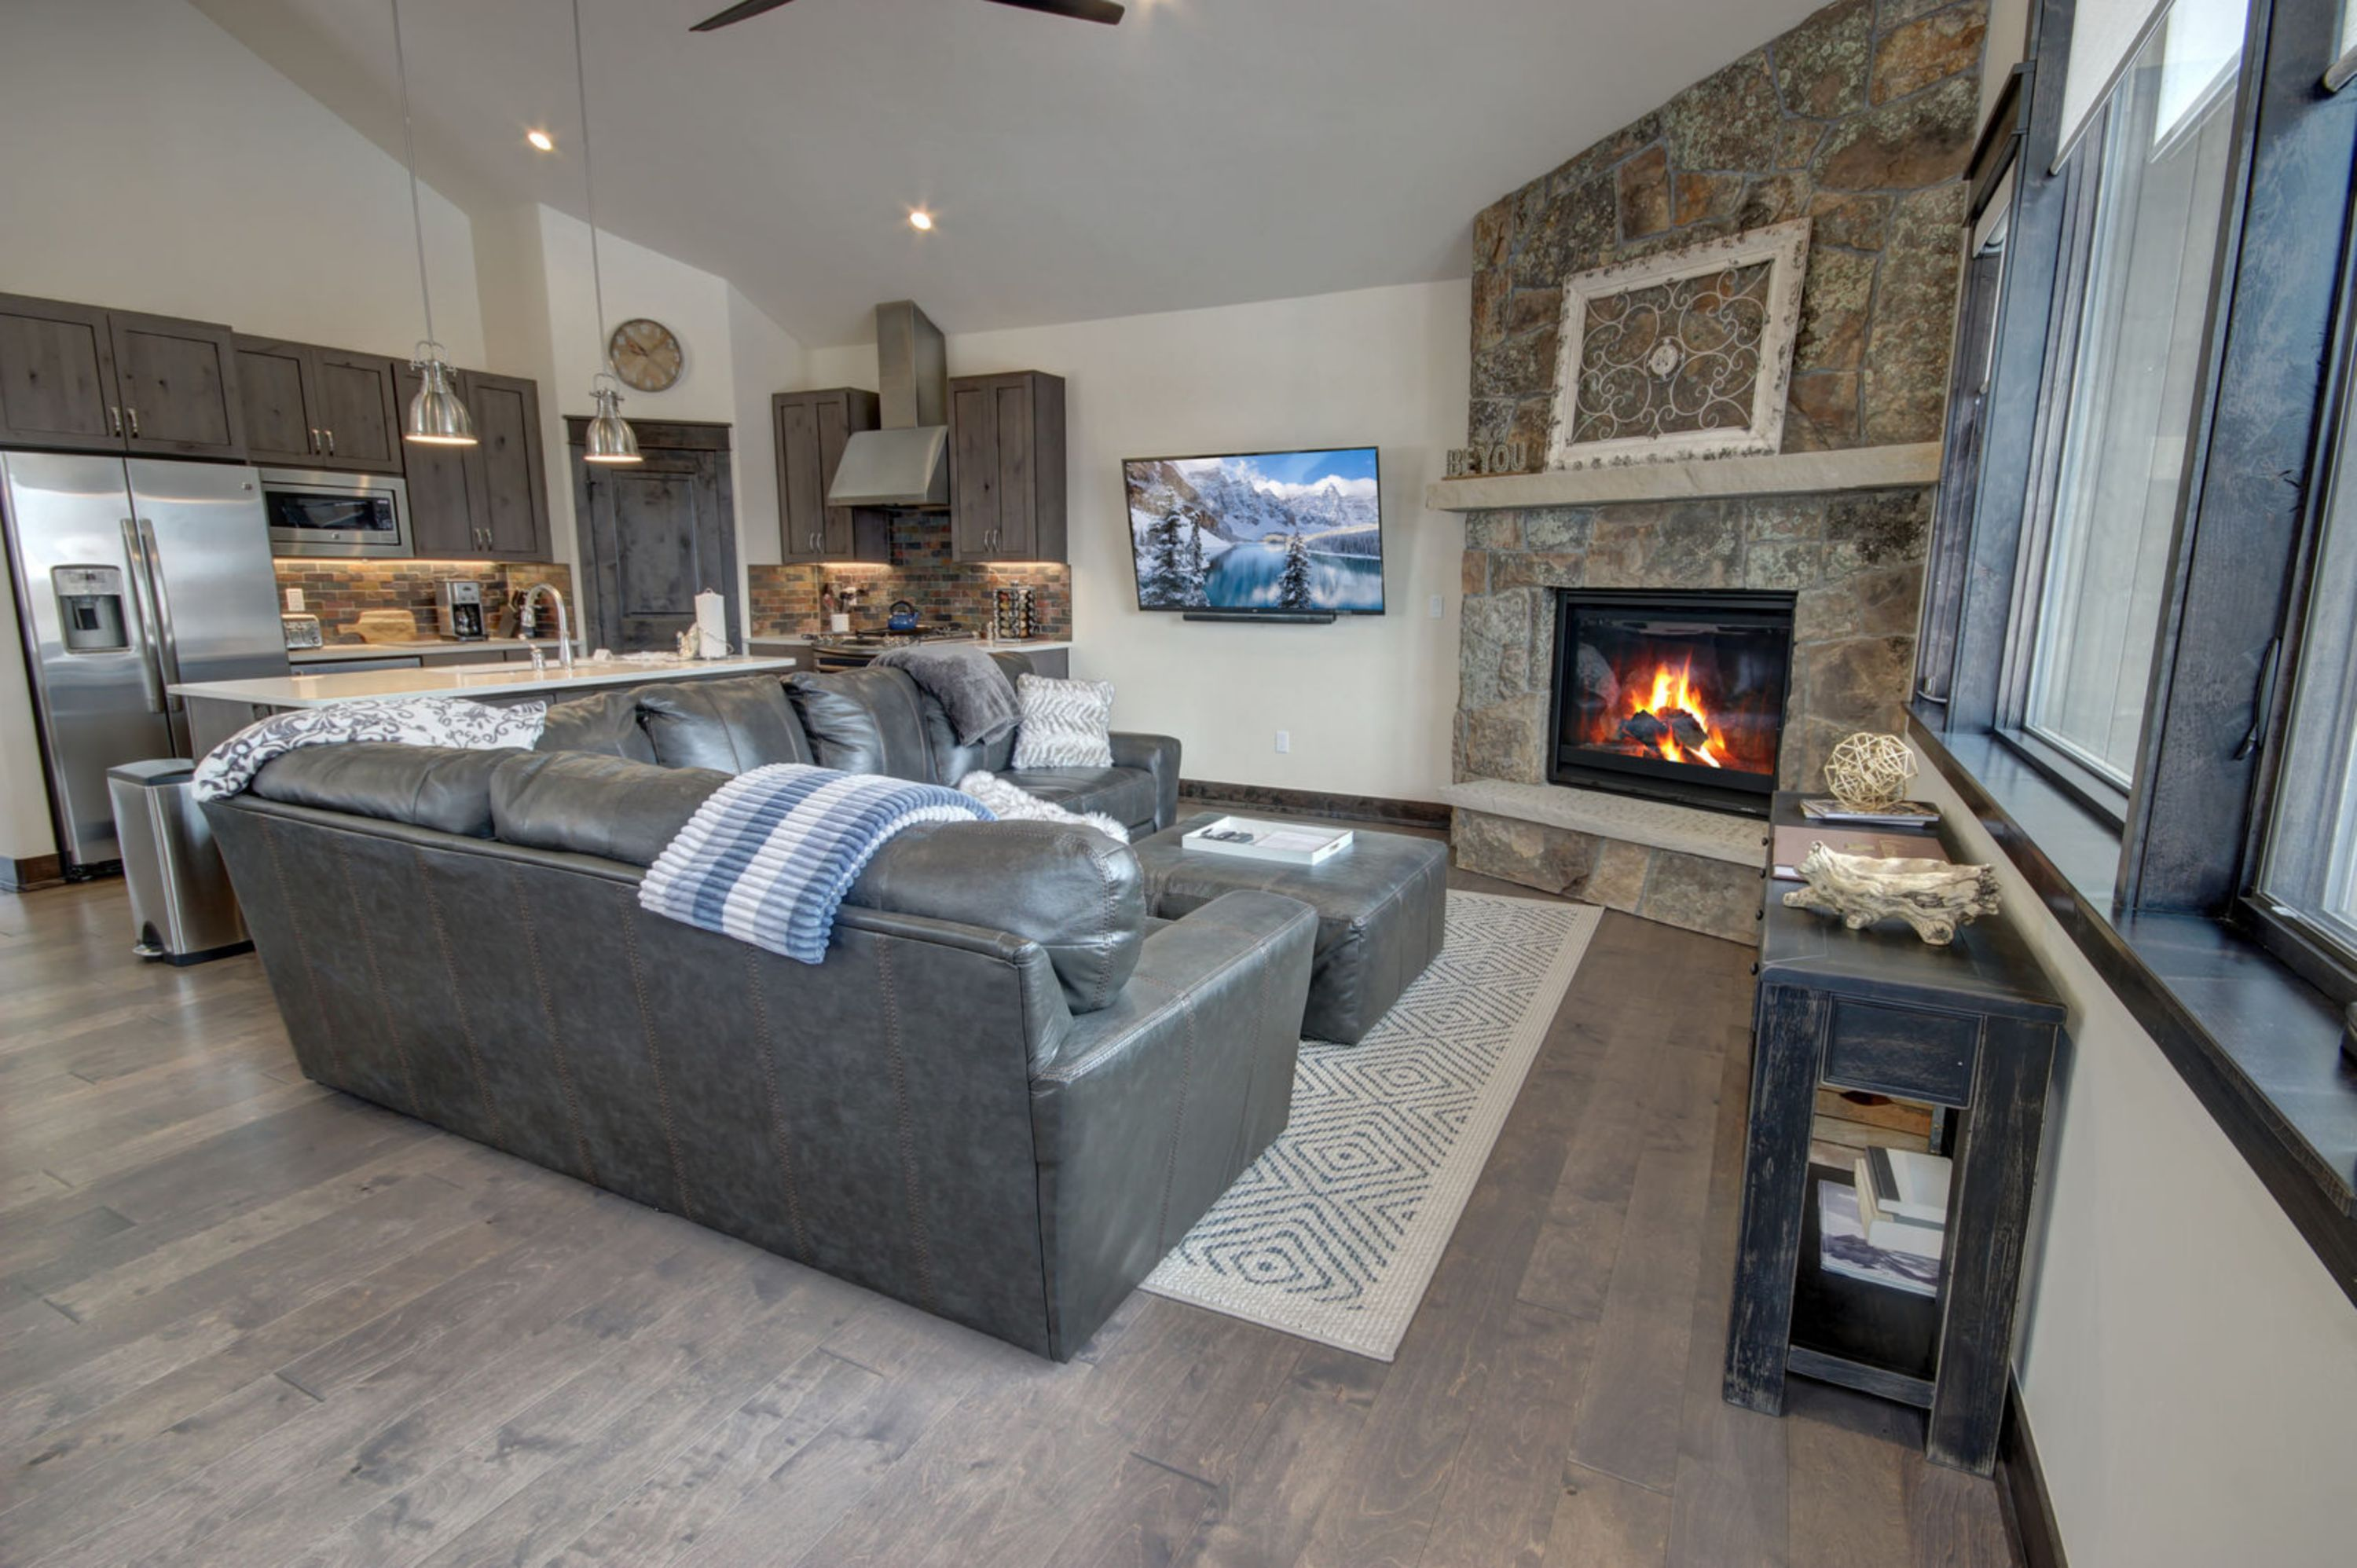 living room with a cozy fireplace and relaxing tv